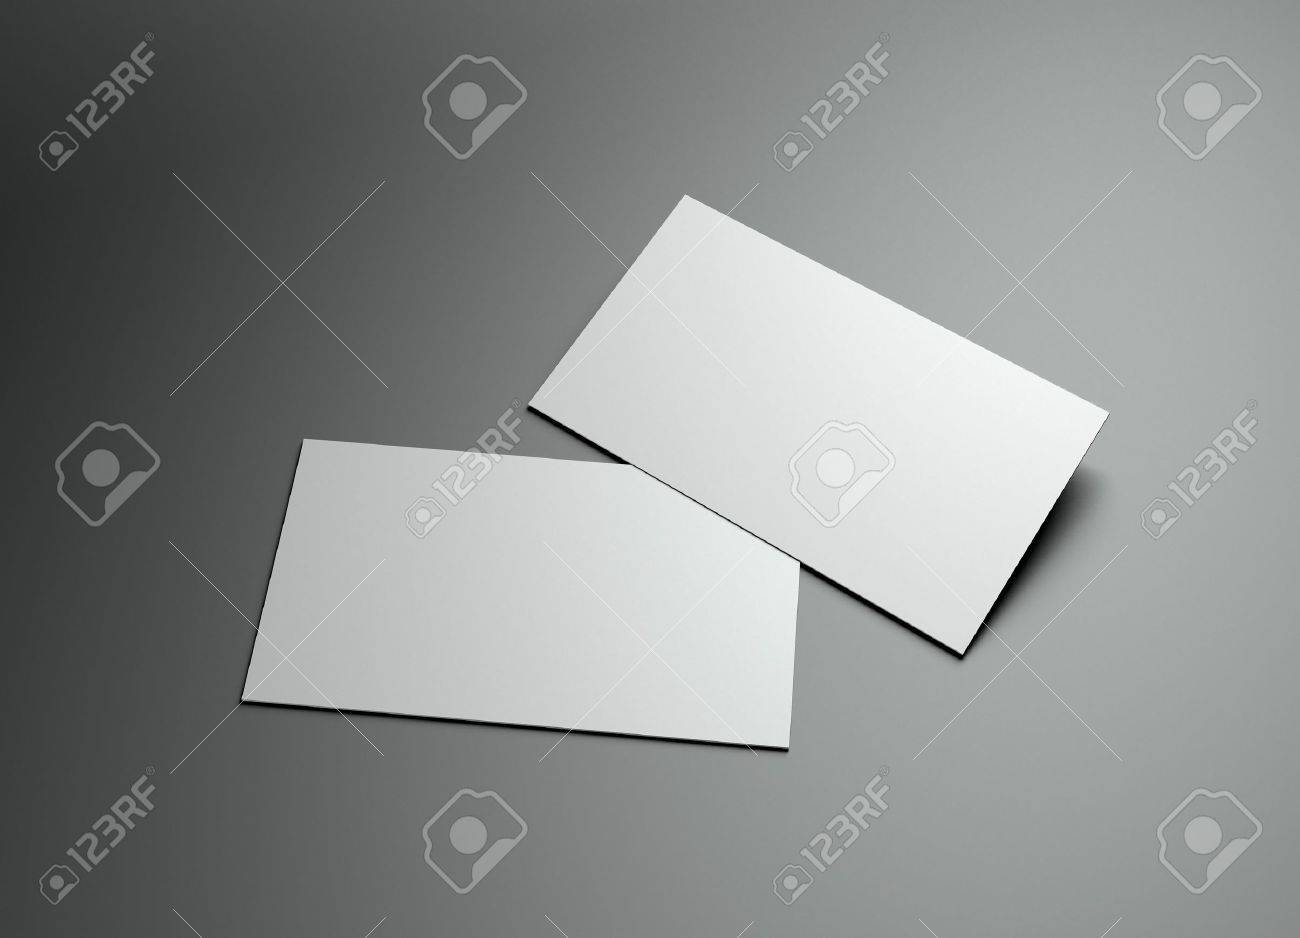 the 3d scene could be fit with any name card design,Is the best for promotion of company brand image. Stock Photo - 12835977